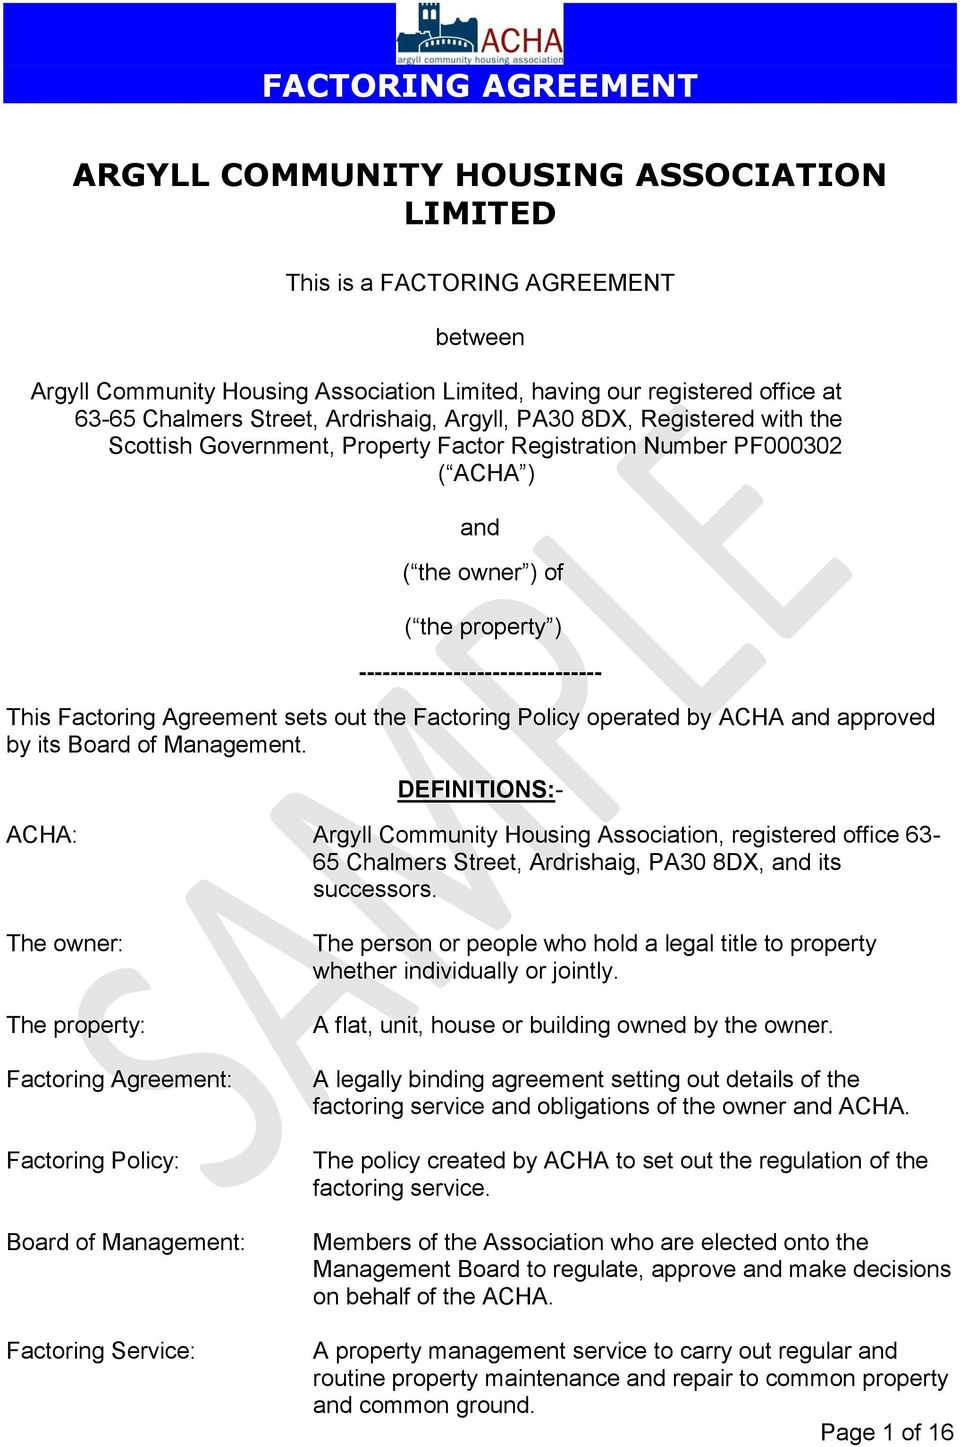 Agreement sets out the Factoring Policy operated by ACHA and approved by its Board of Management.